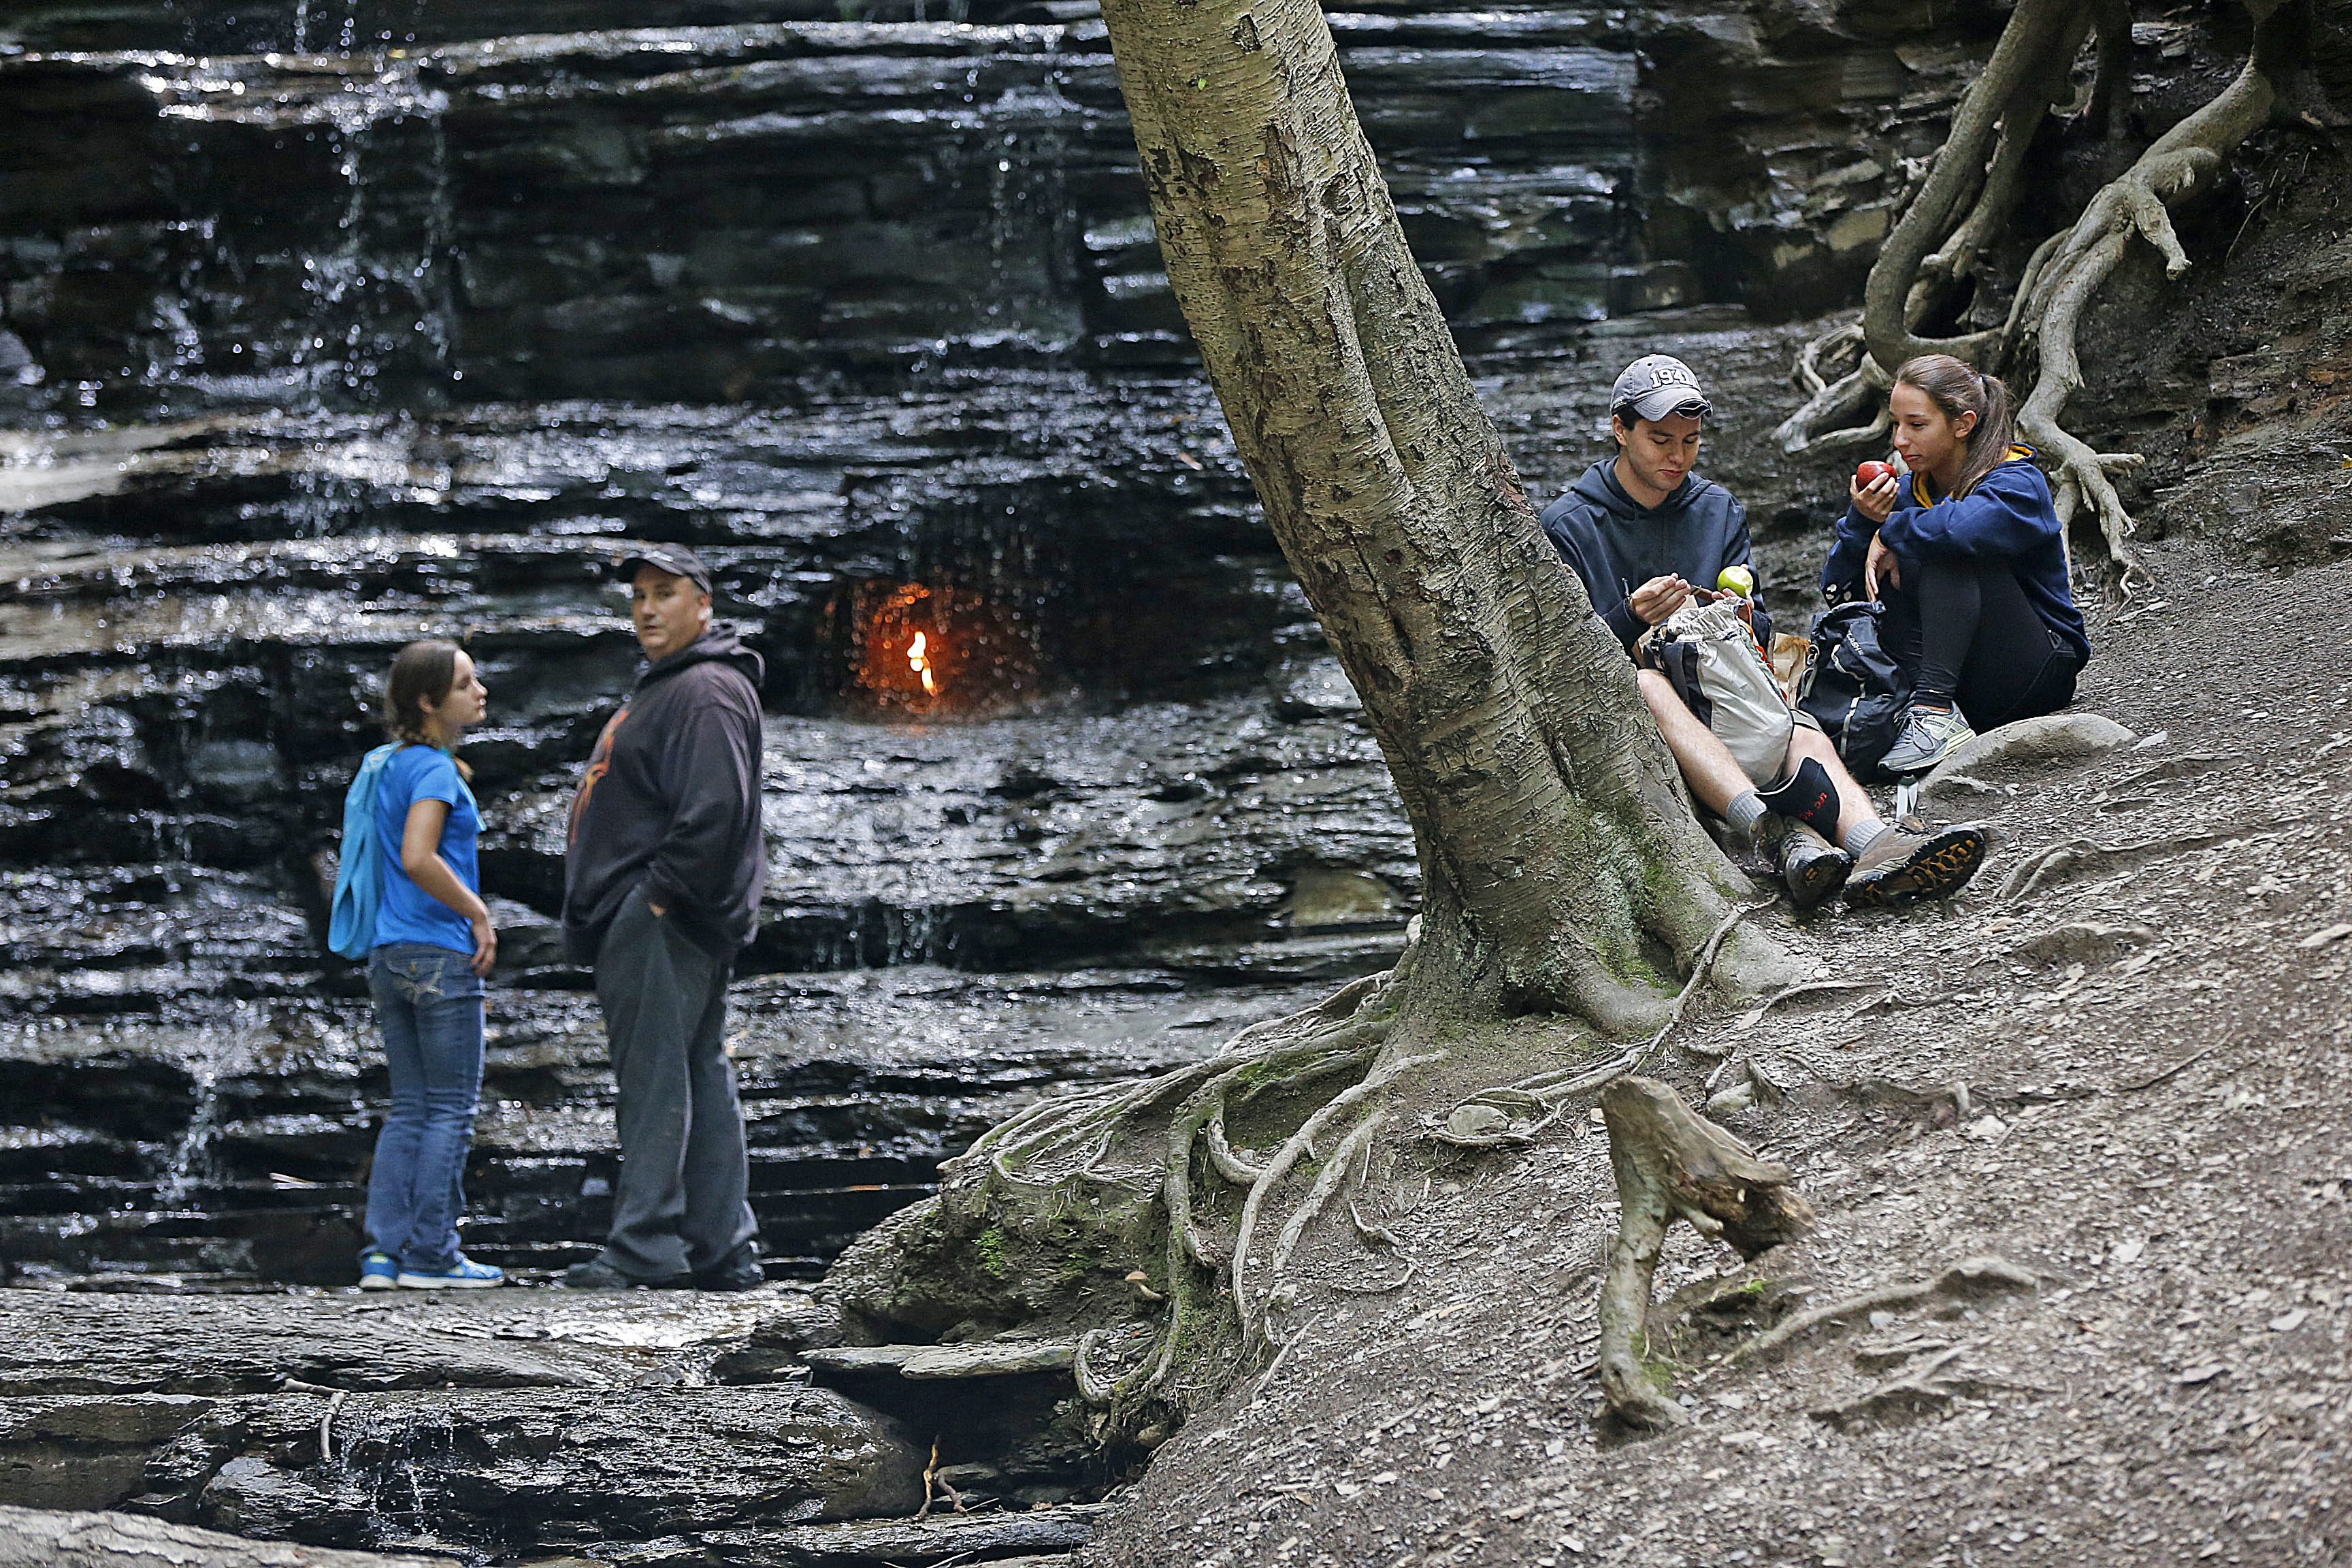 A couple stops for a picnic lunch near the Eternal Flame at Chestnut Ridge Park in Orchard Park.